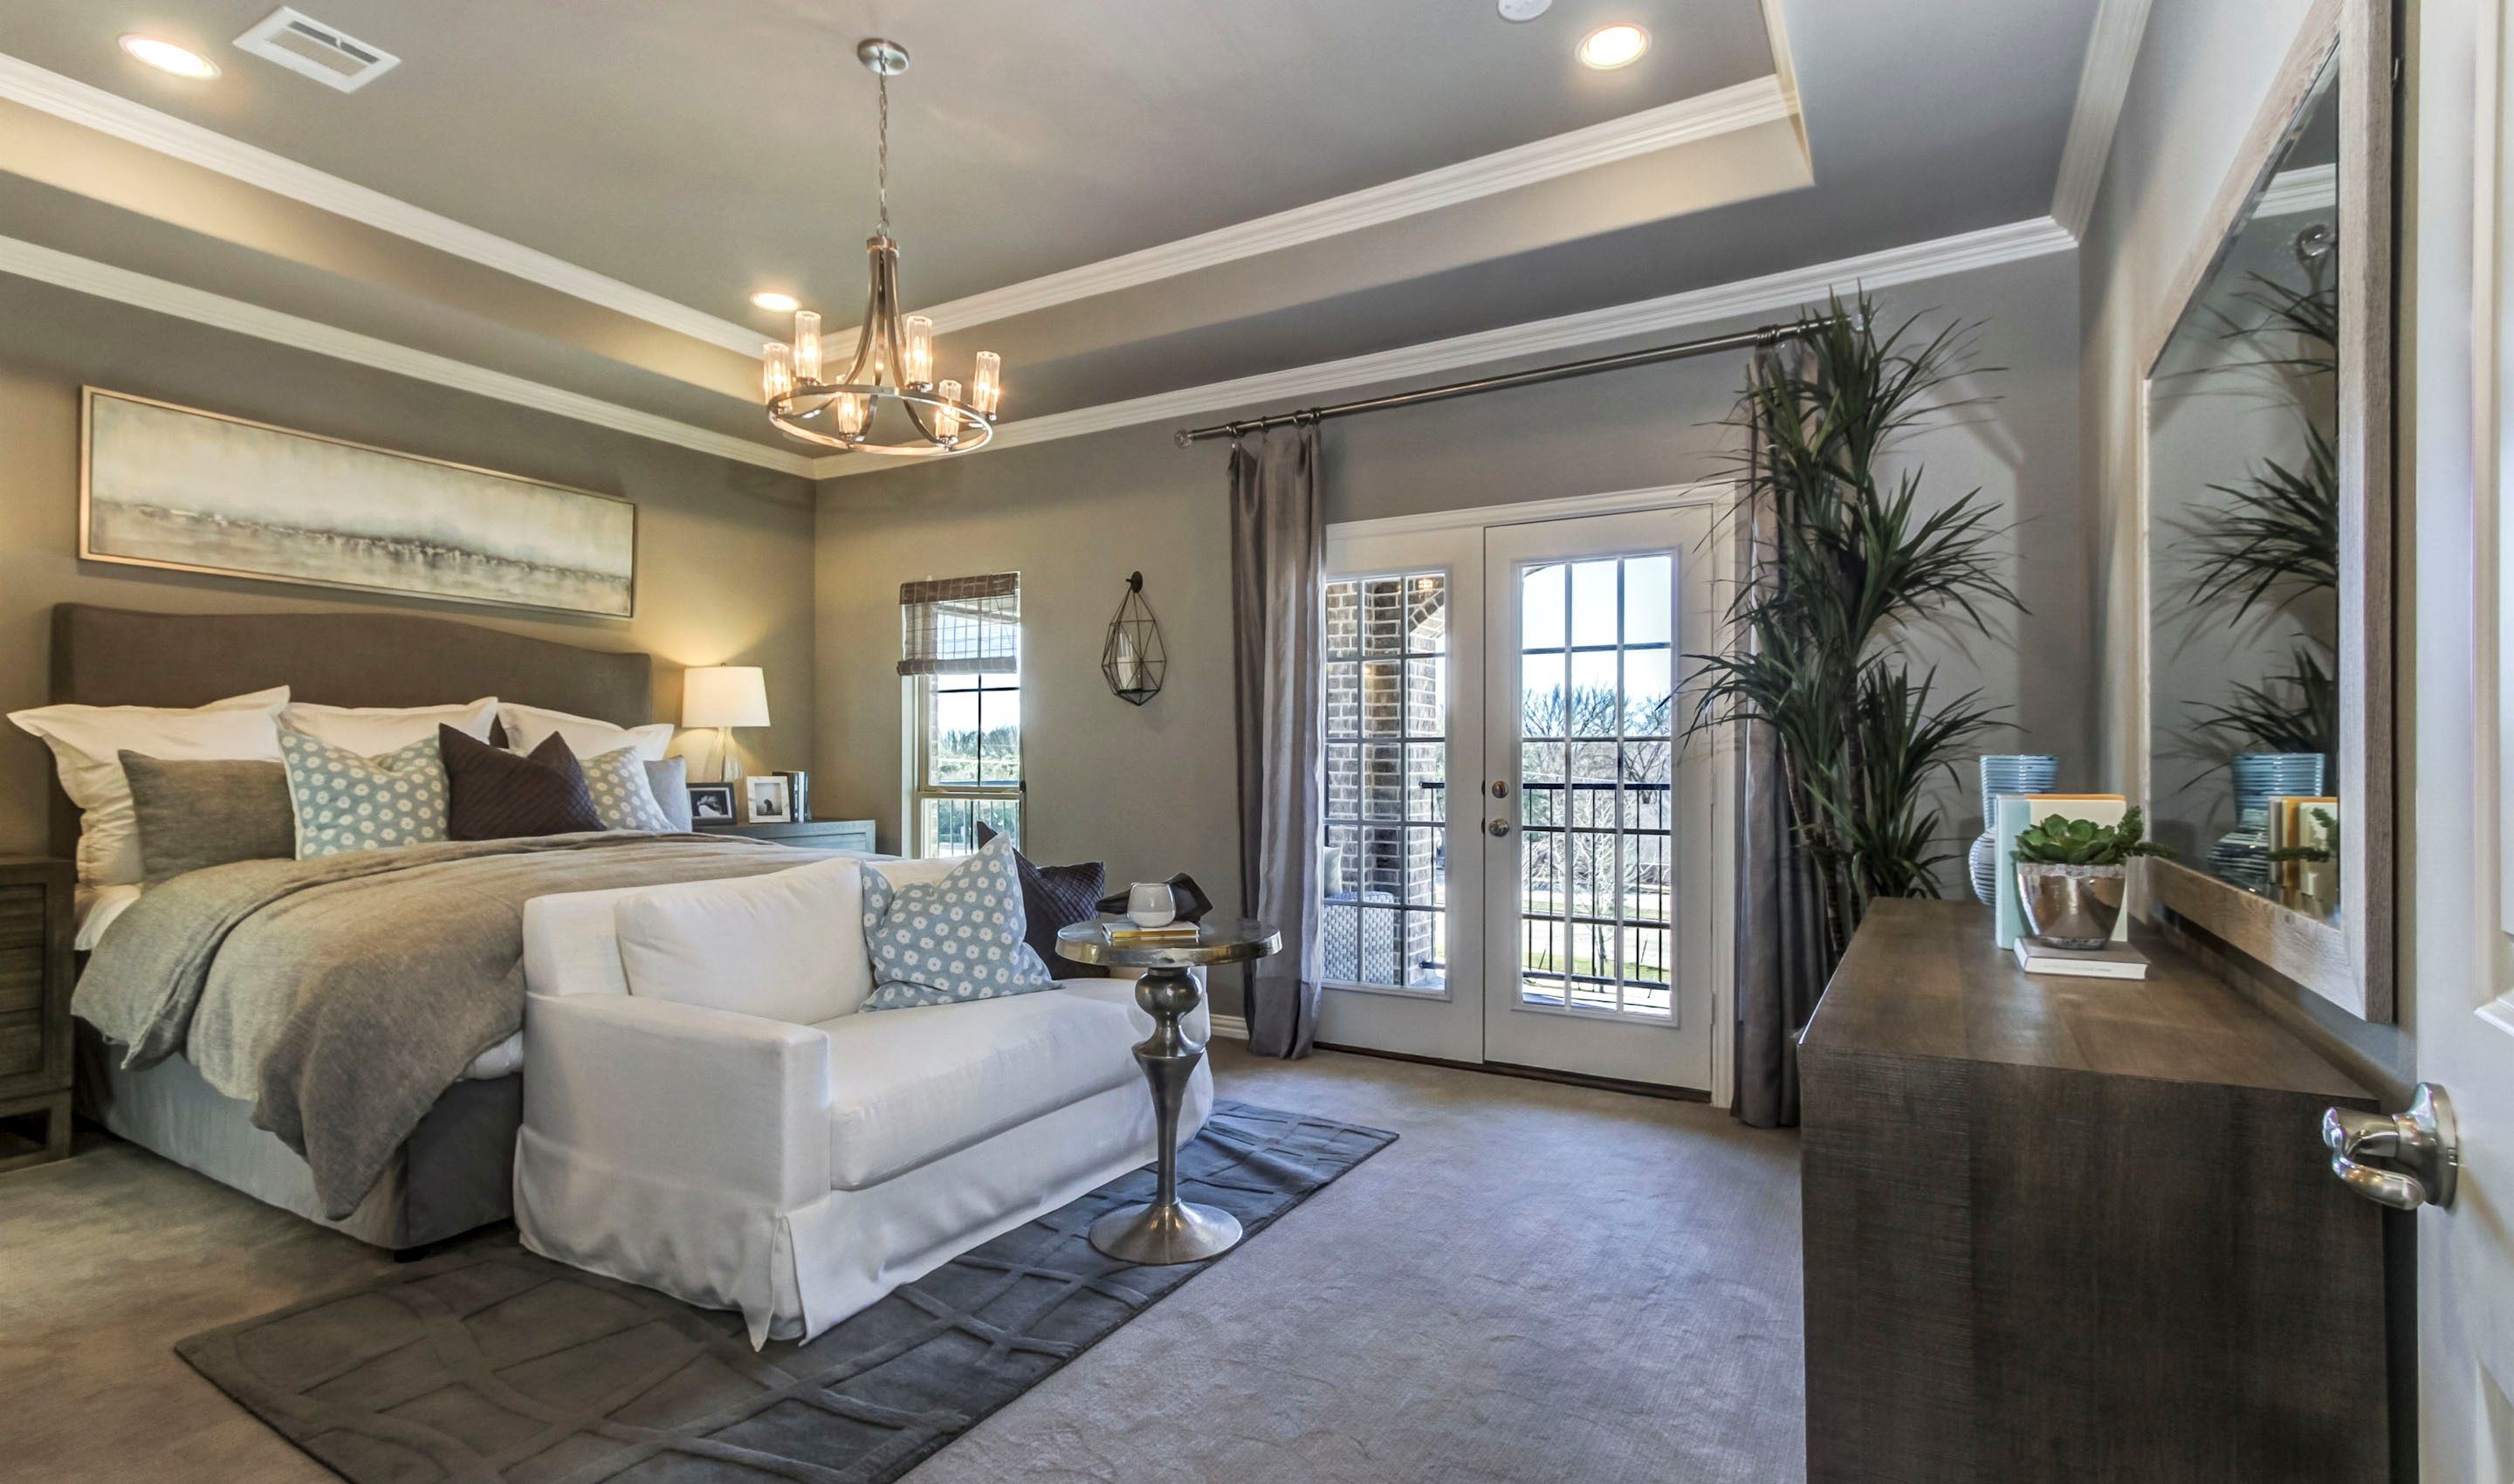 Single Family for Sale at Riverchase 2435 South Gate Drive, Homesite H-2 Richardson, Texas 75080 United States